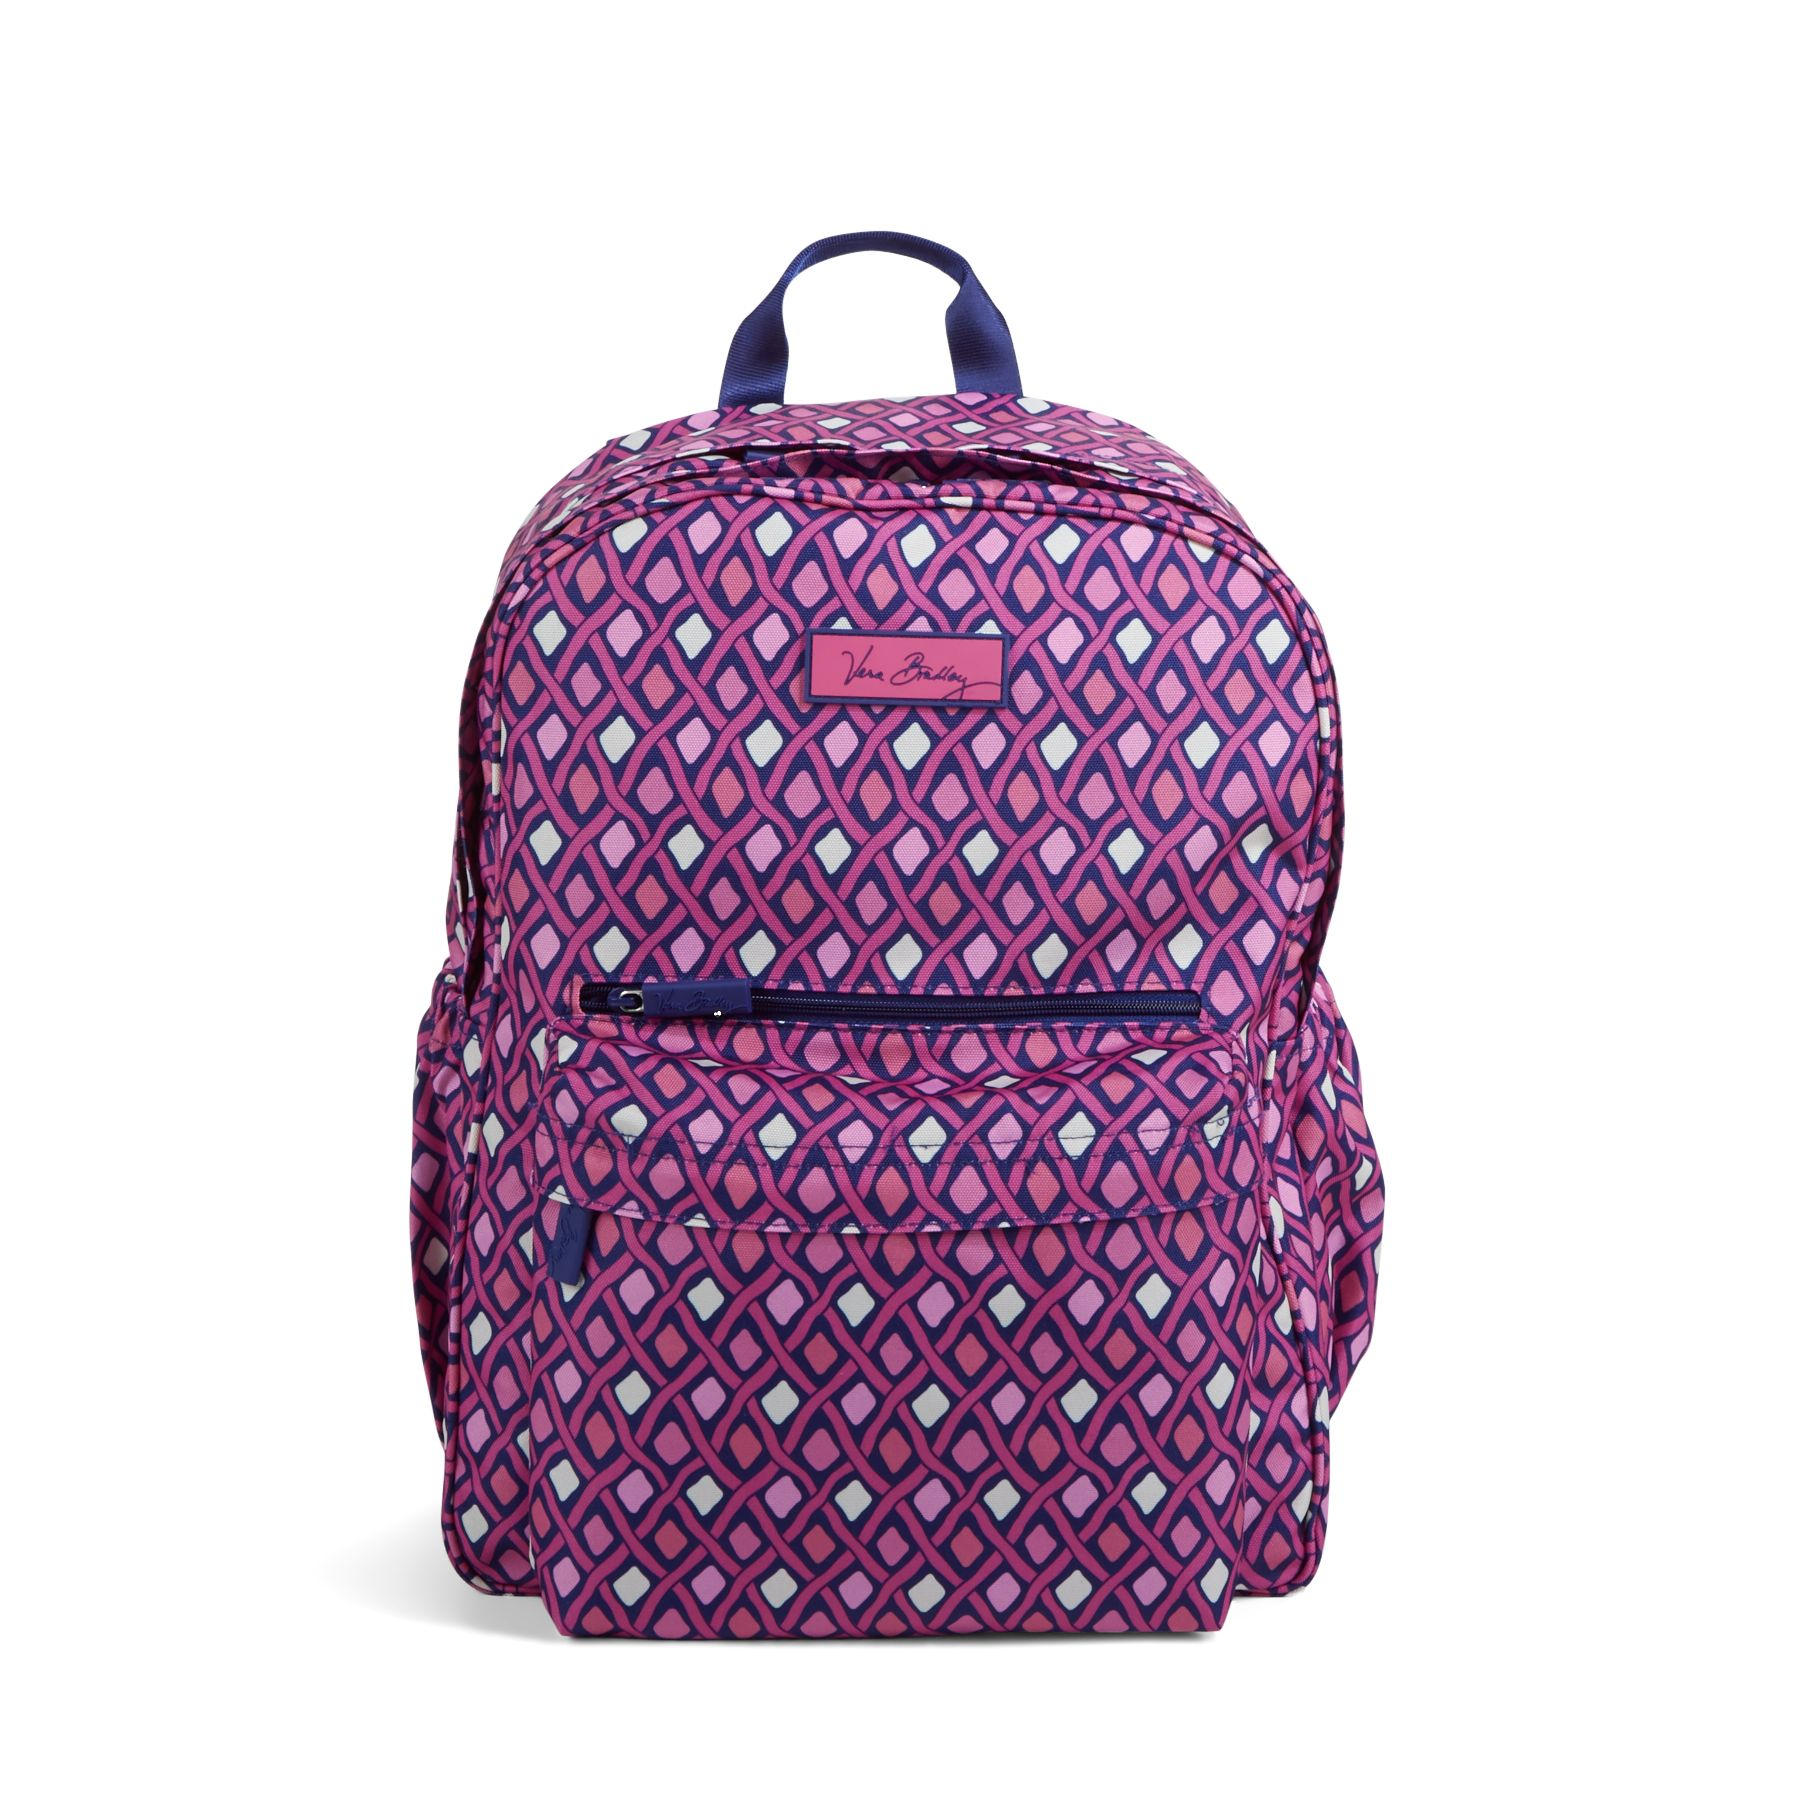 Vera Bradley Lighten Up Grande Backpack Ebay